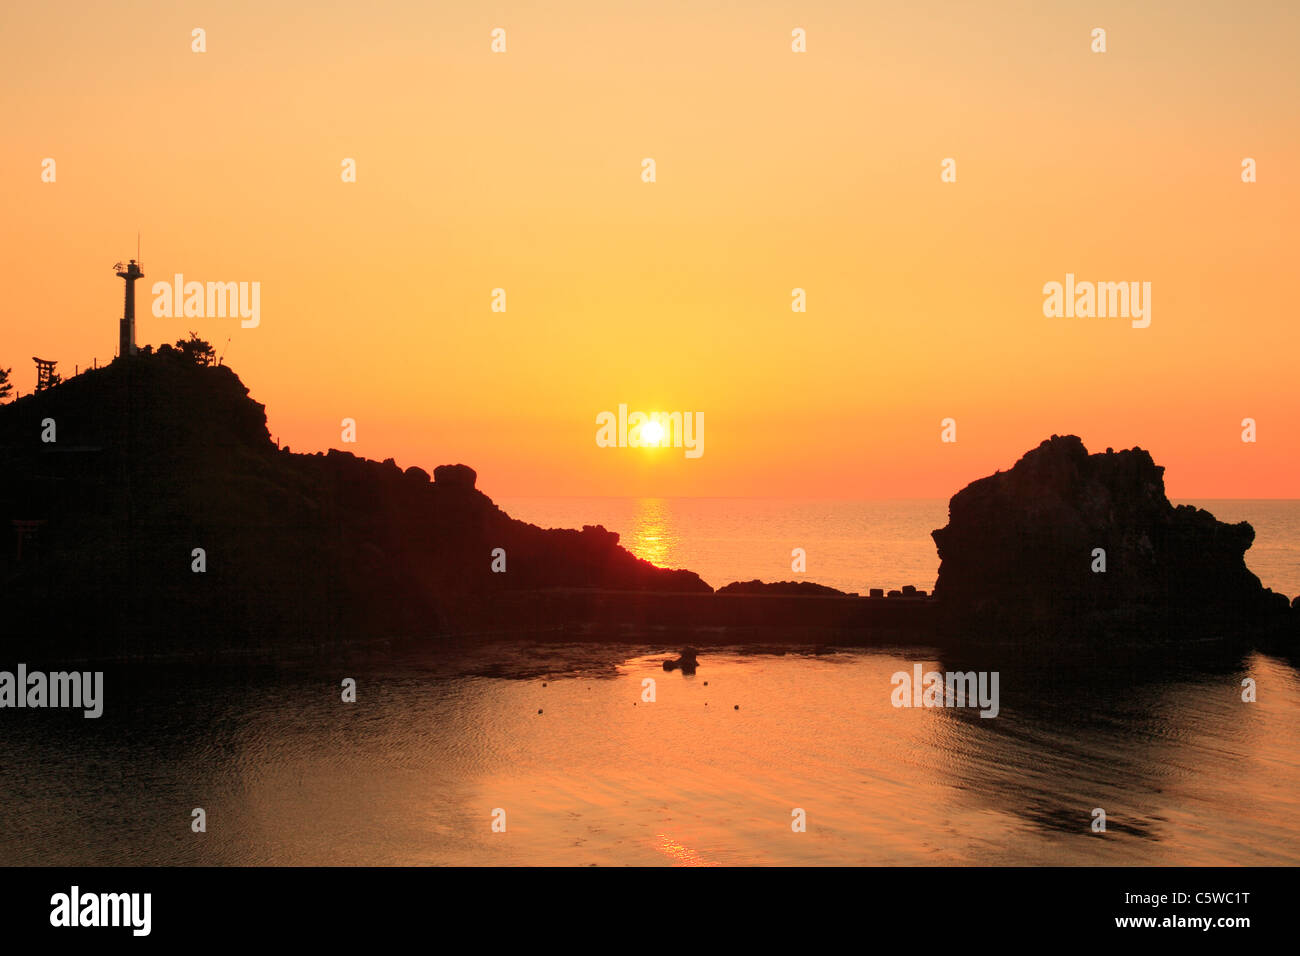 Evening View of Nou Beach and Benten Rock, Itoigawa, Niigata, Japan - Stock Image